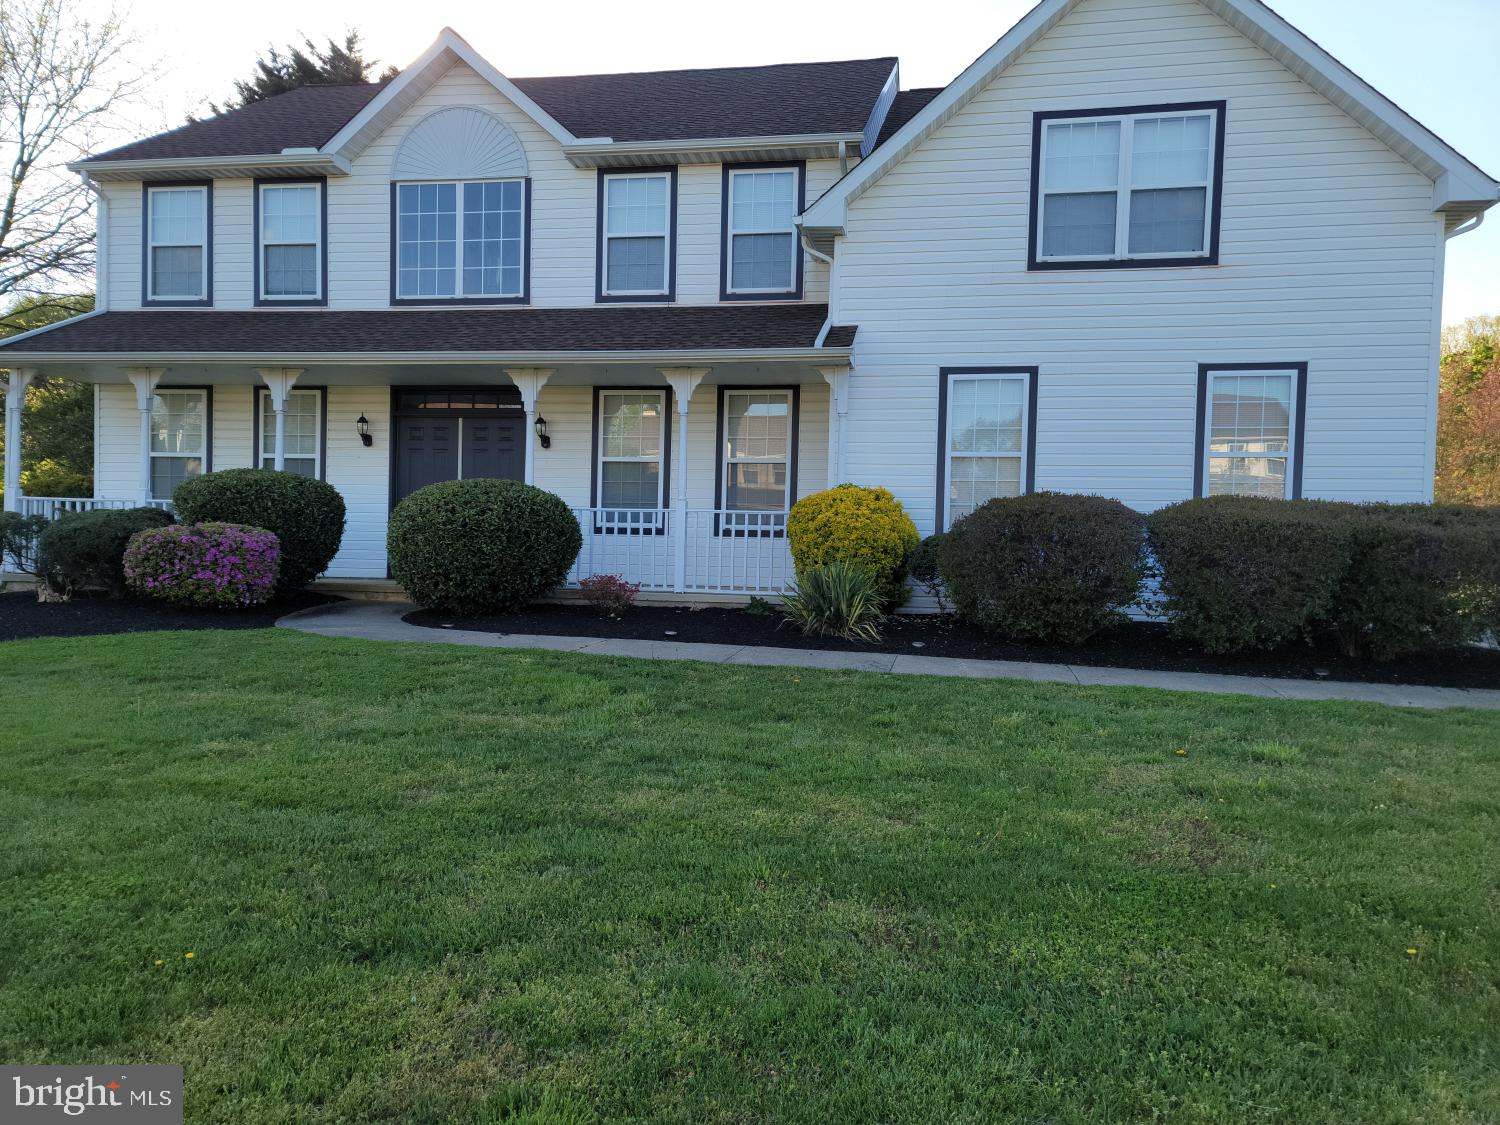 Gorgeous 4bds, 2.5 bths Cambridge model home well situated  on 0.79 acre of land in sought after Eme